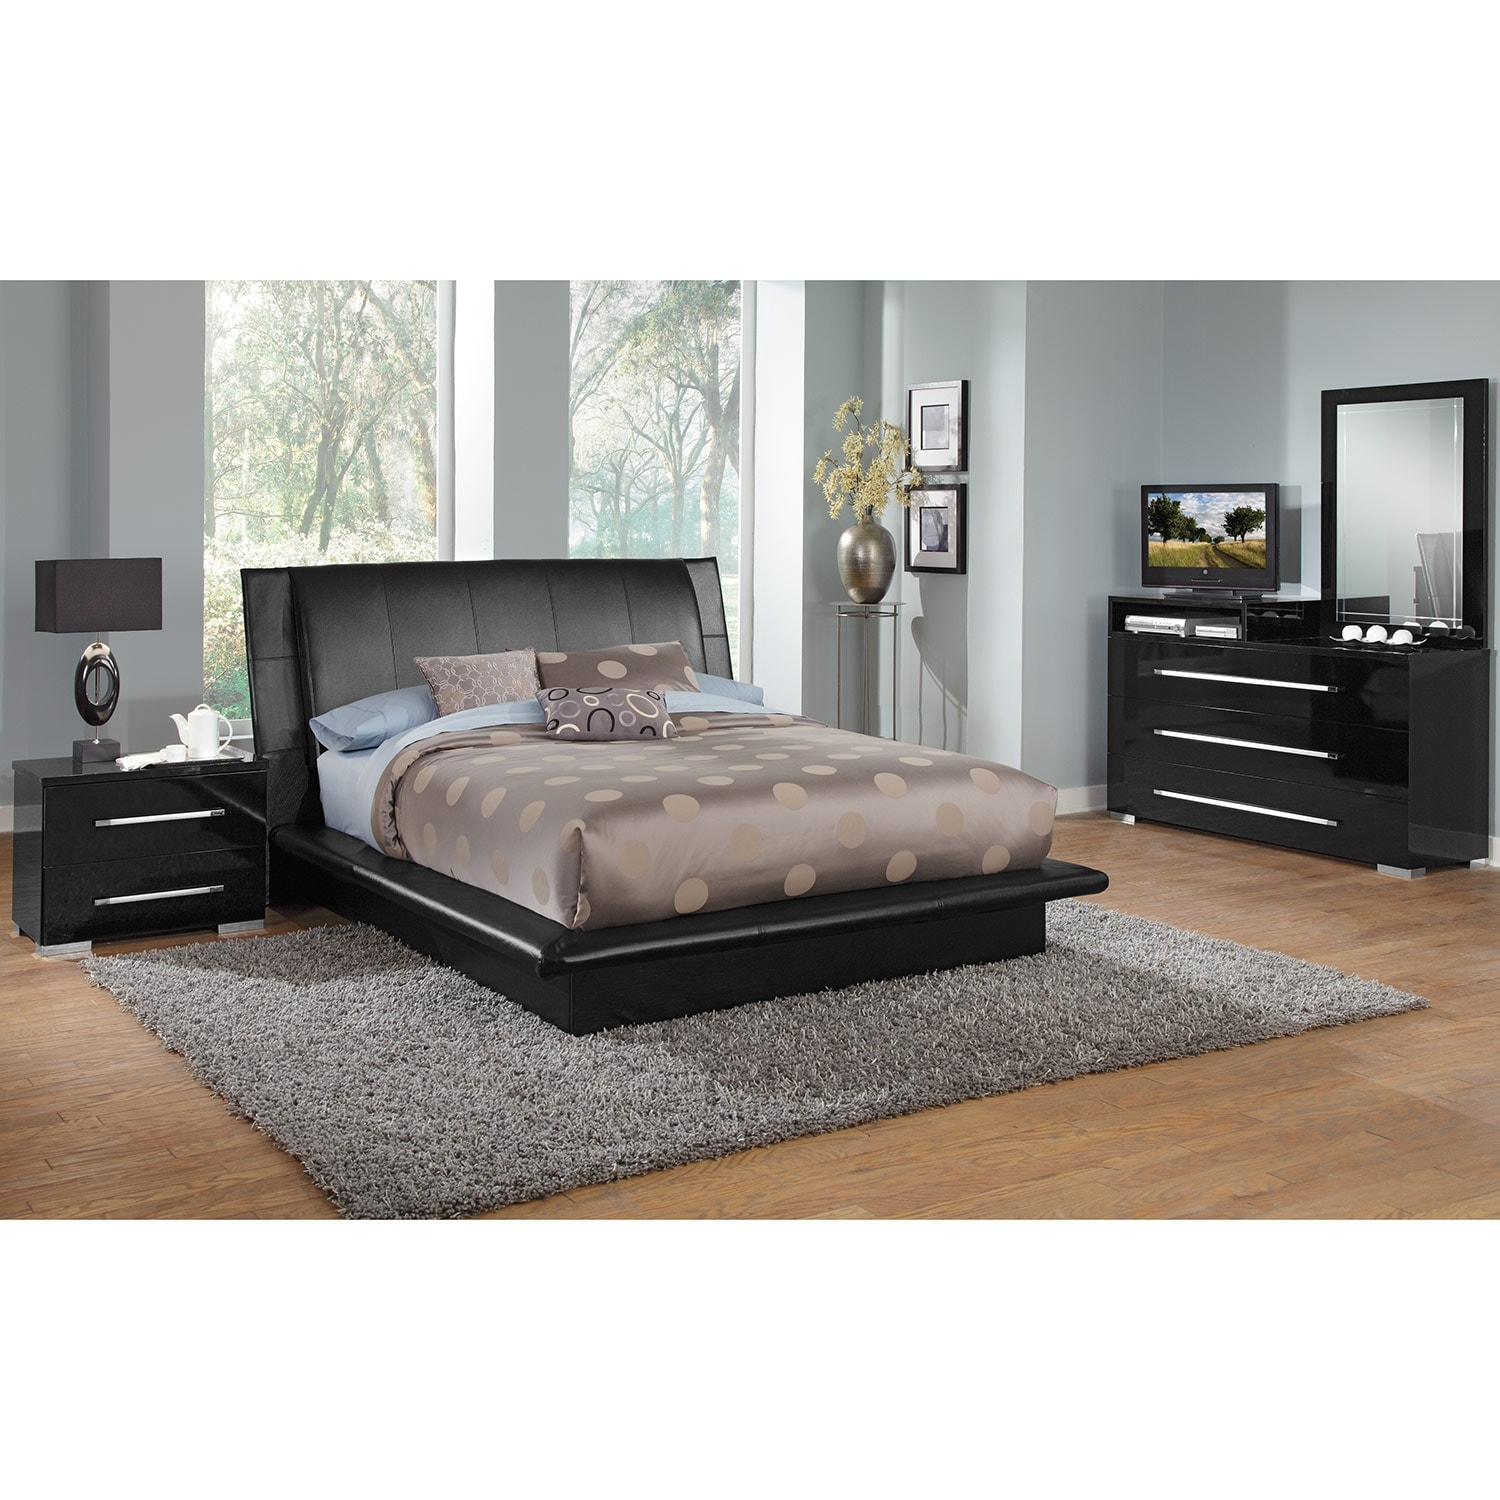 Dimora black queen bed value city furniture - Black queen bedroom furniture set ...